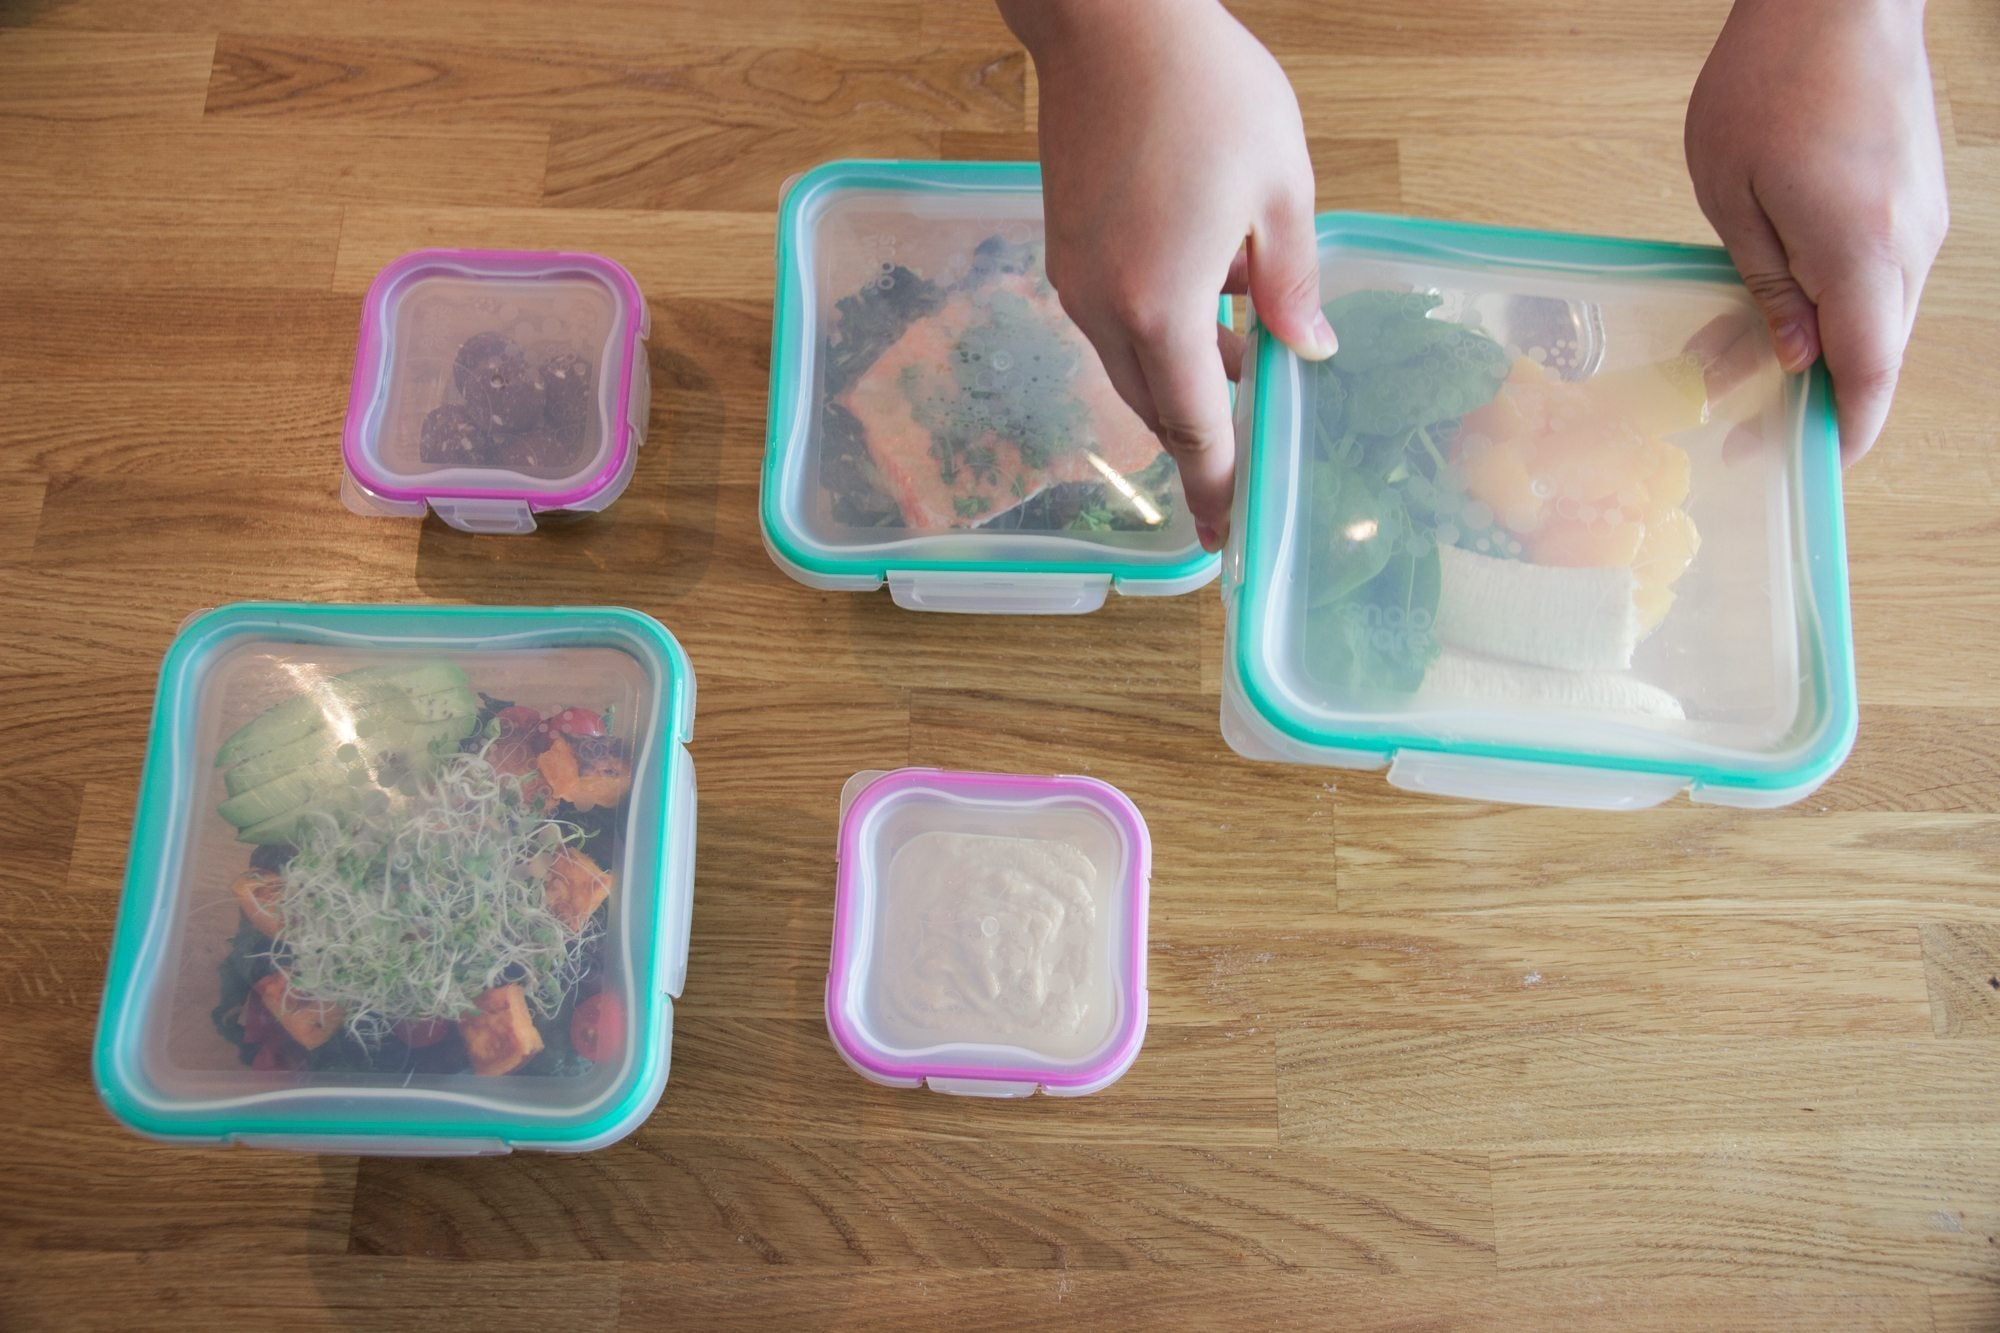 back to school lunches are great to meal prep and store in tupperware